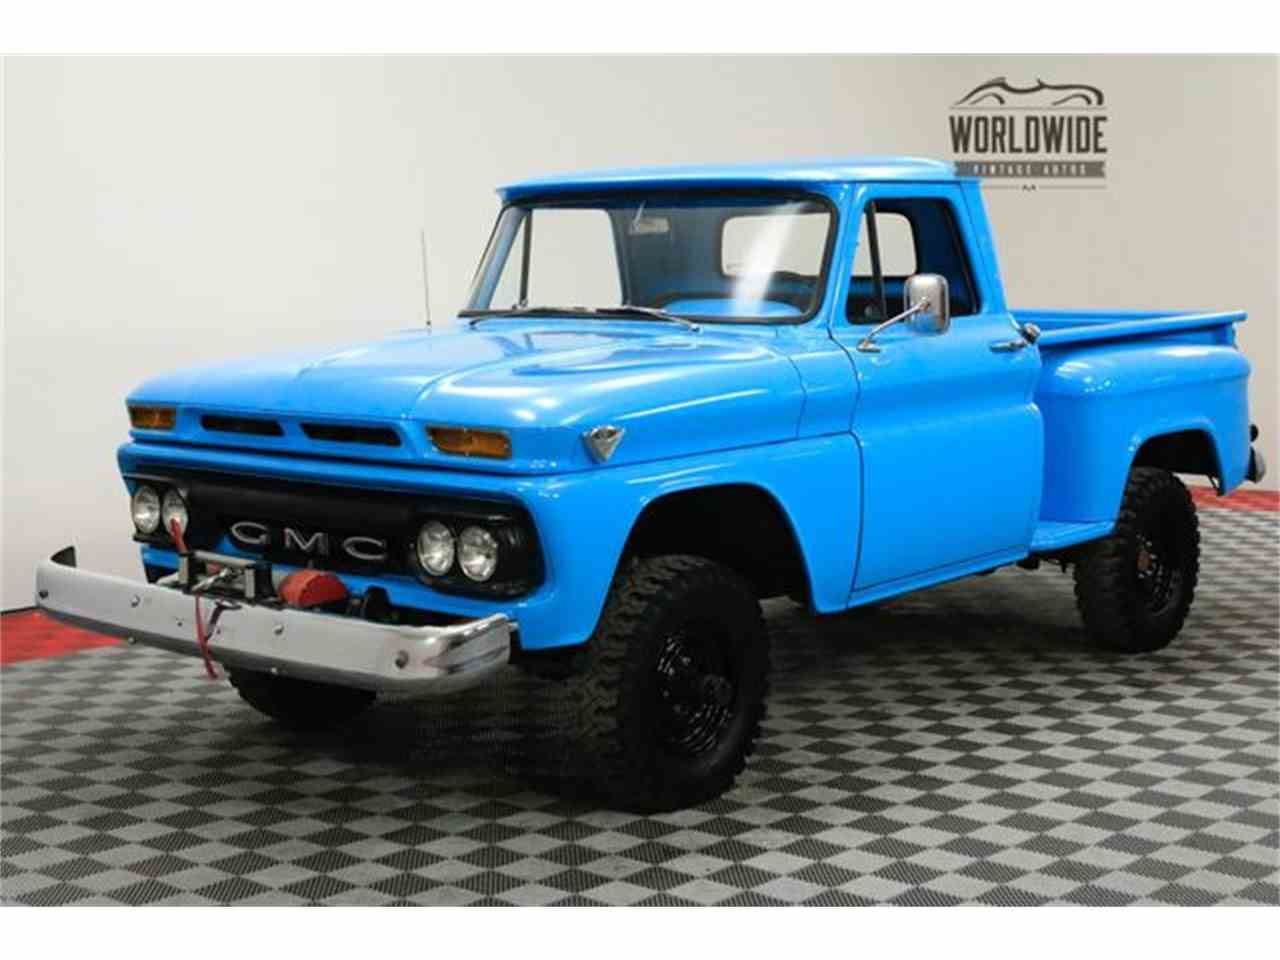 gmc an edition photos news elevation sith sierra for pickup appropriate is truck a lord